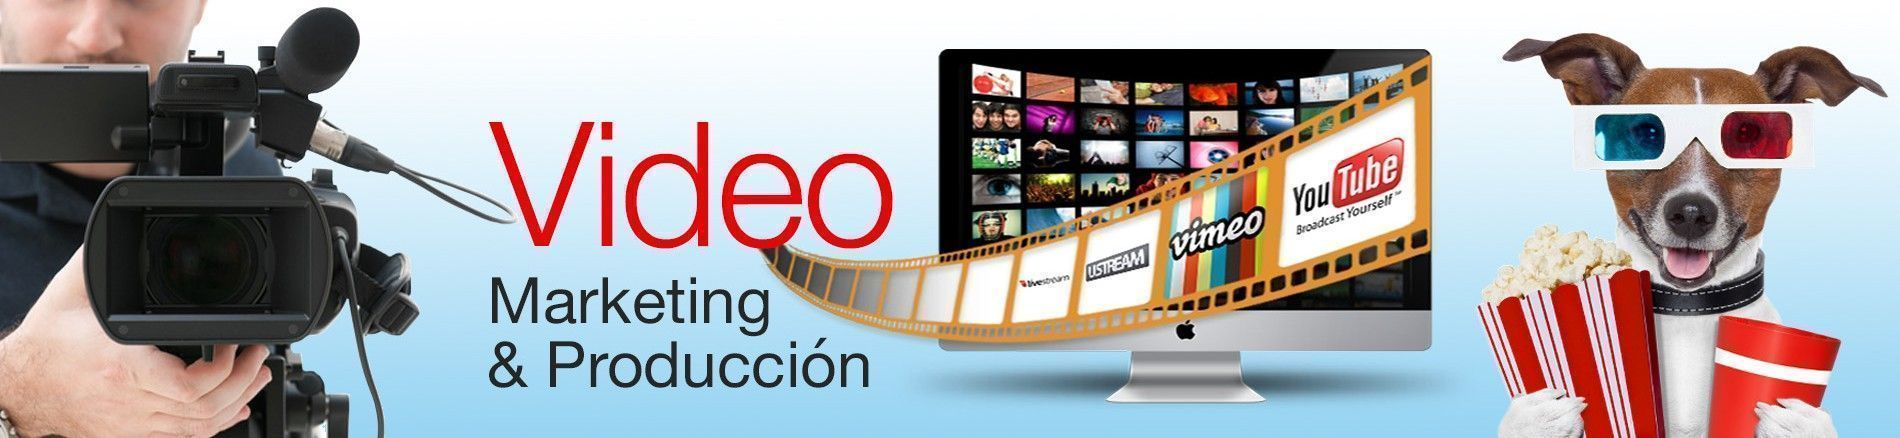 Videomarketing y audiovisuales